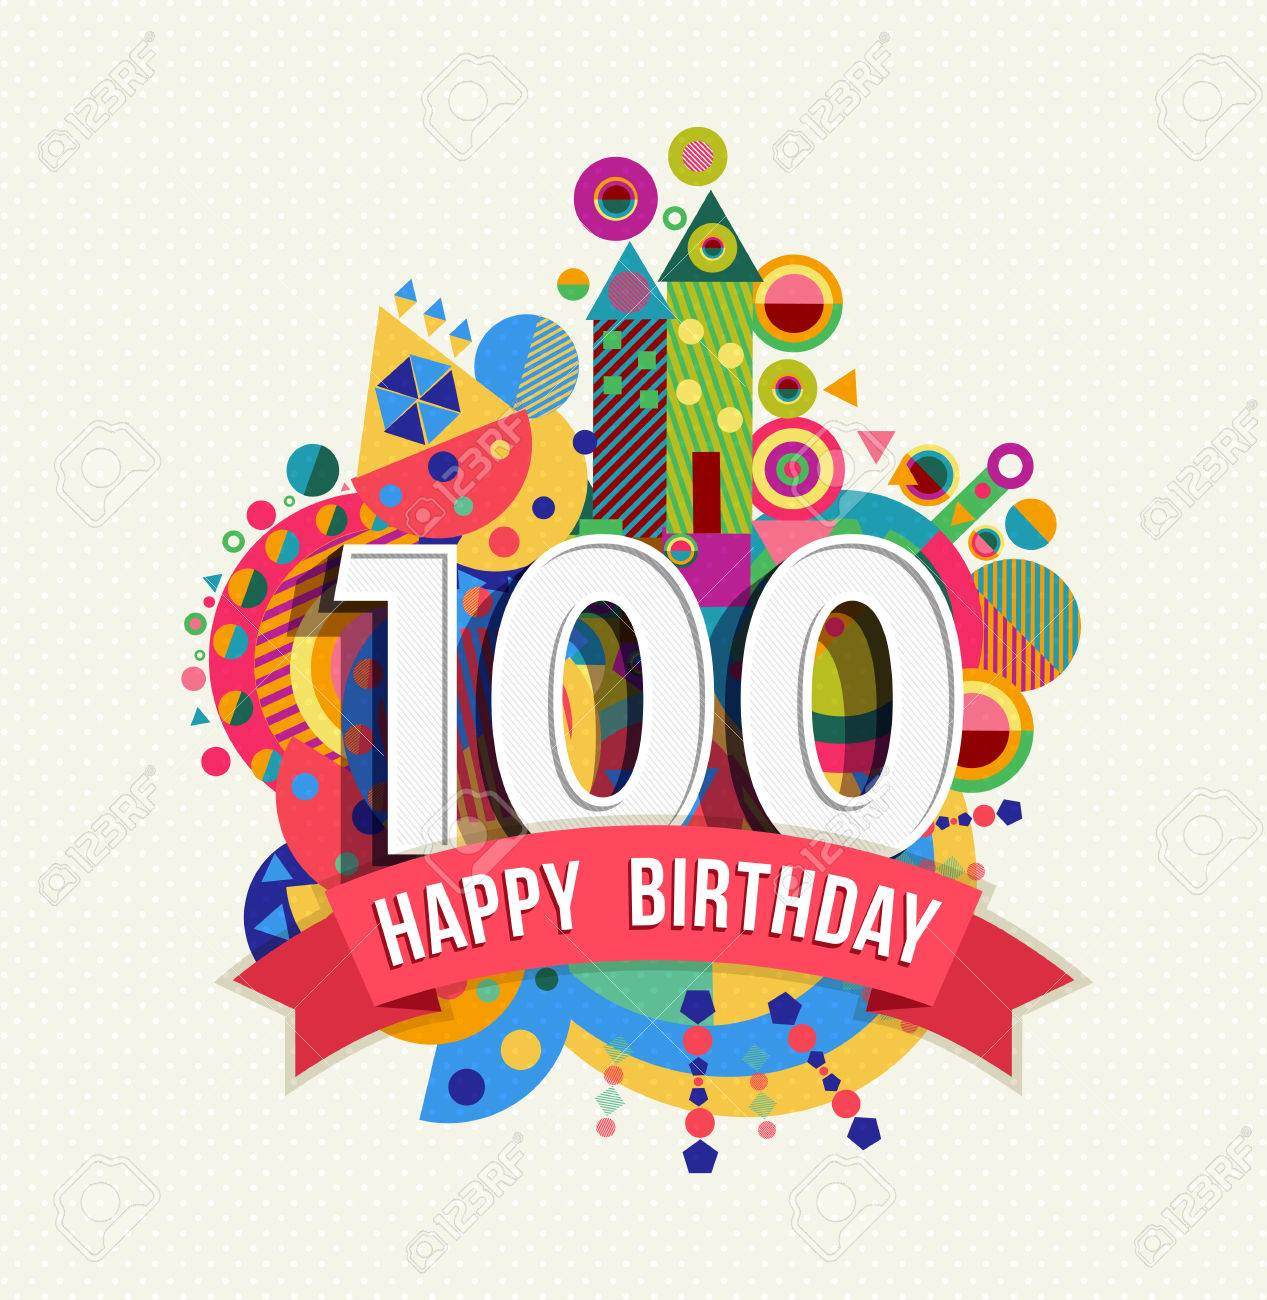 100th Birthday Cliparts, Stock Vector And Royalty Free 100th.